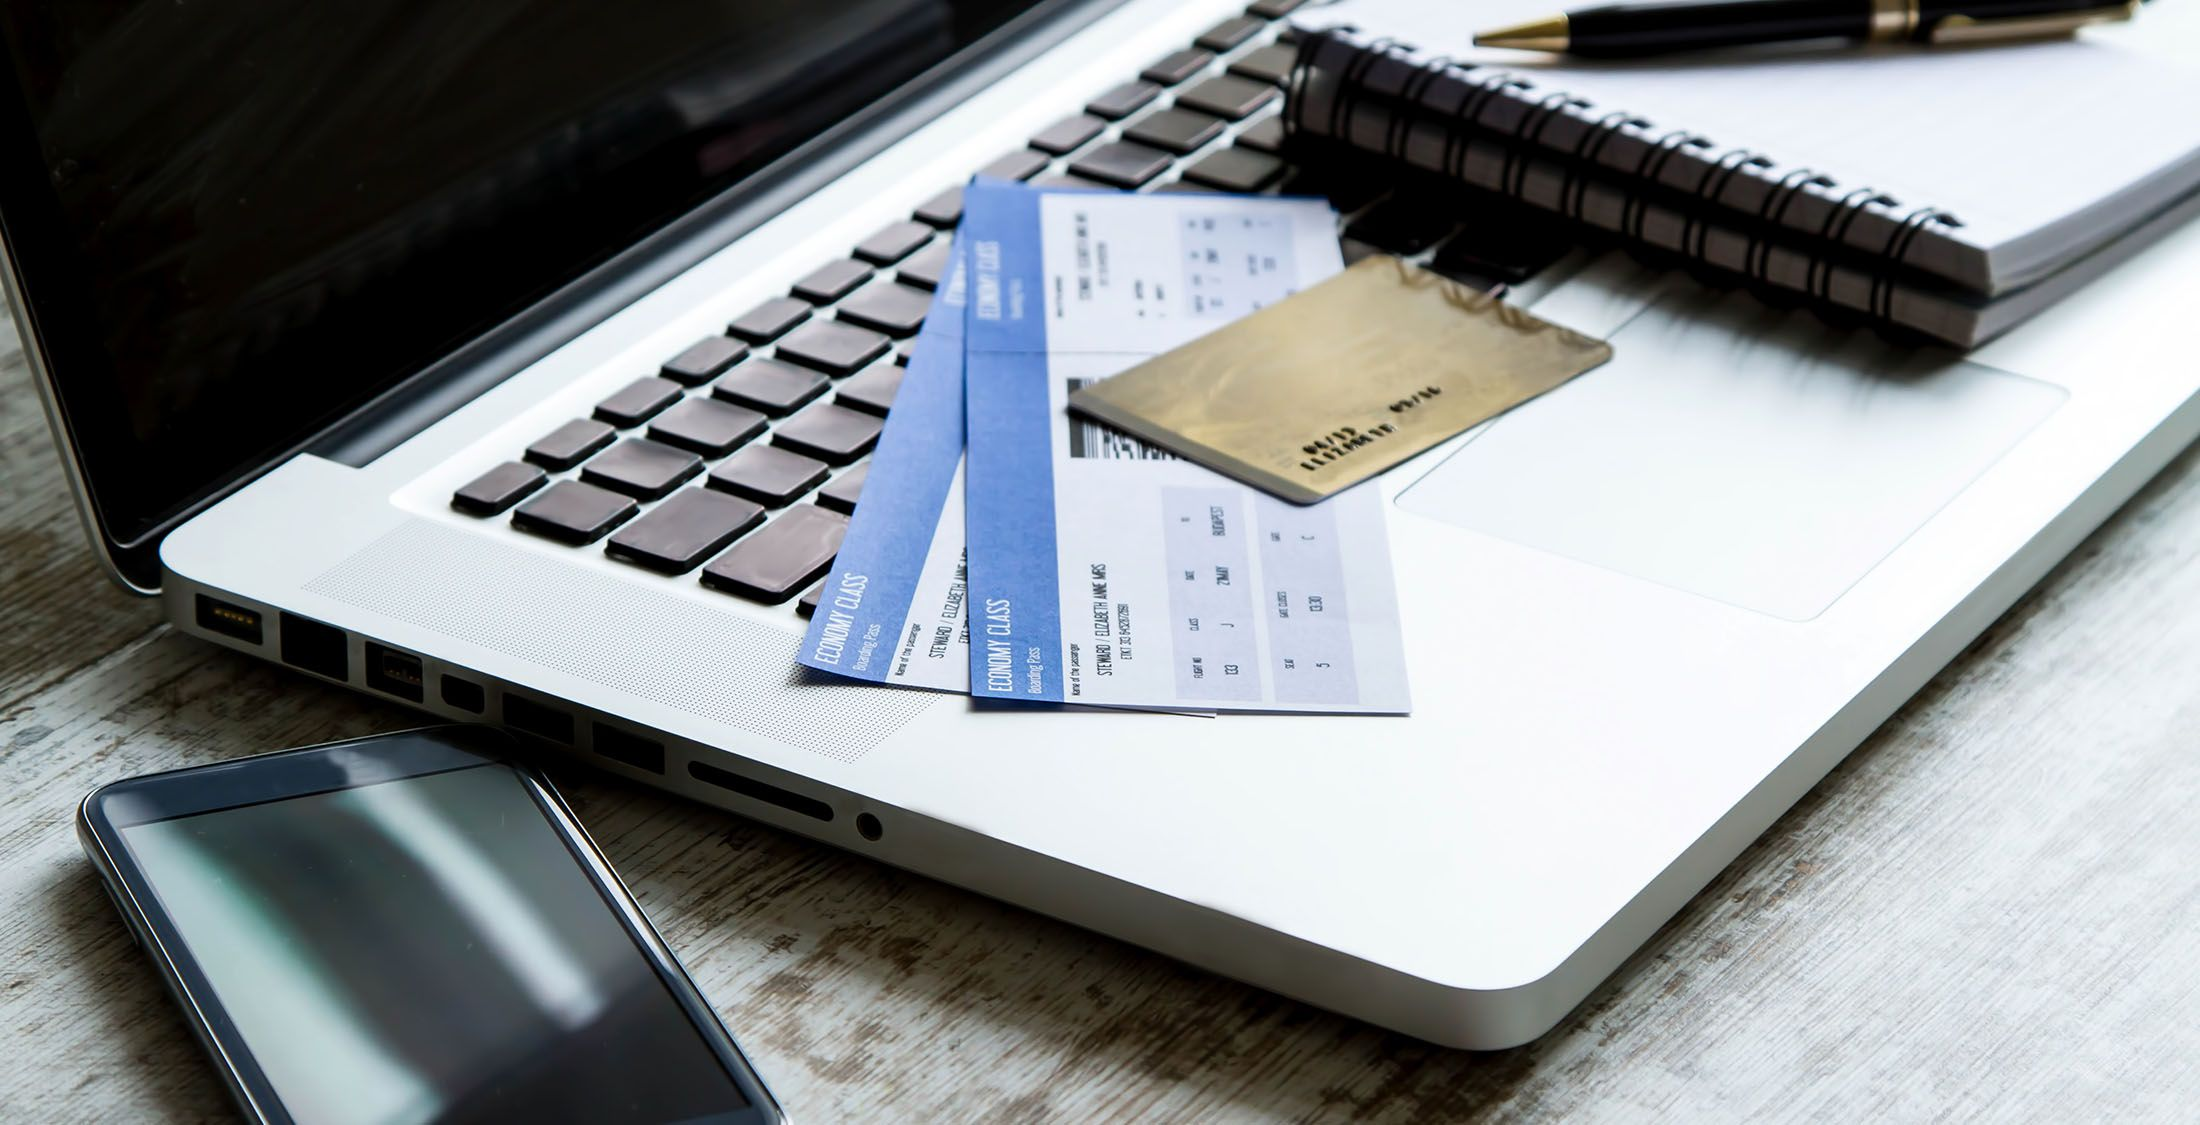 credit card and tickets on top of laptop